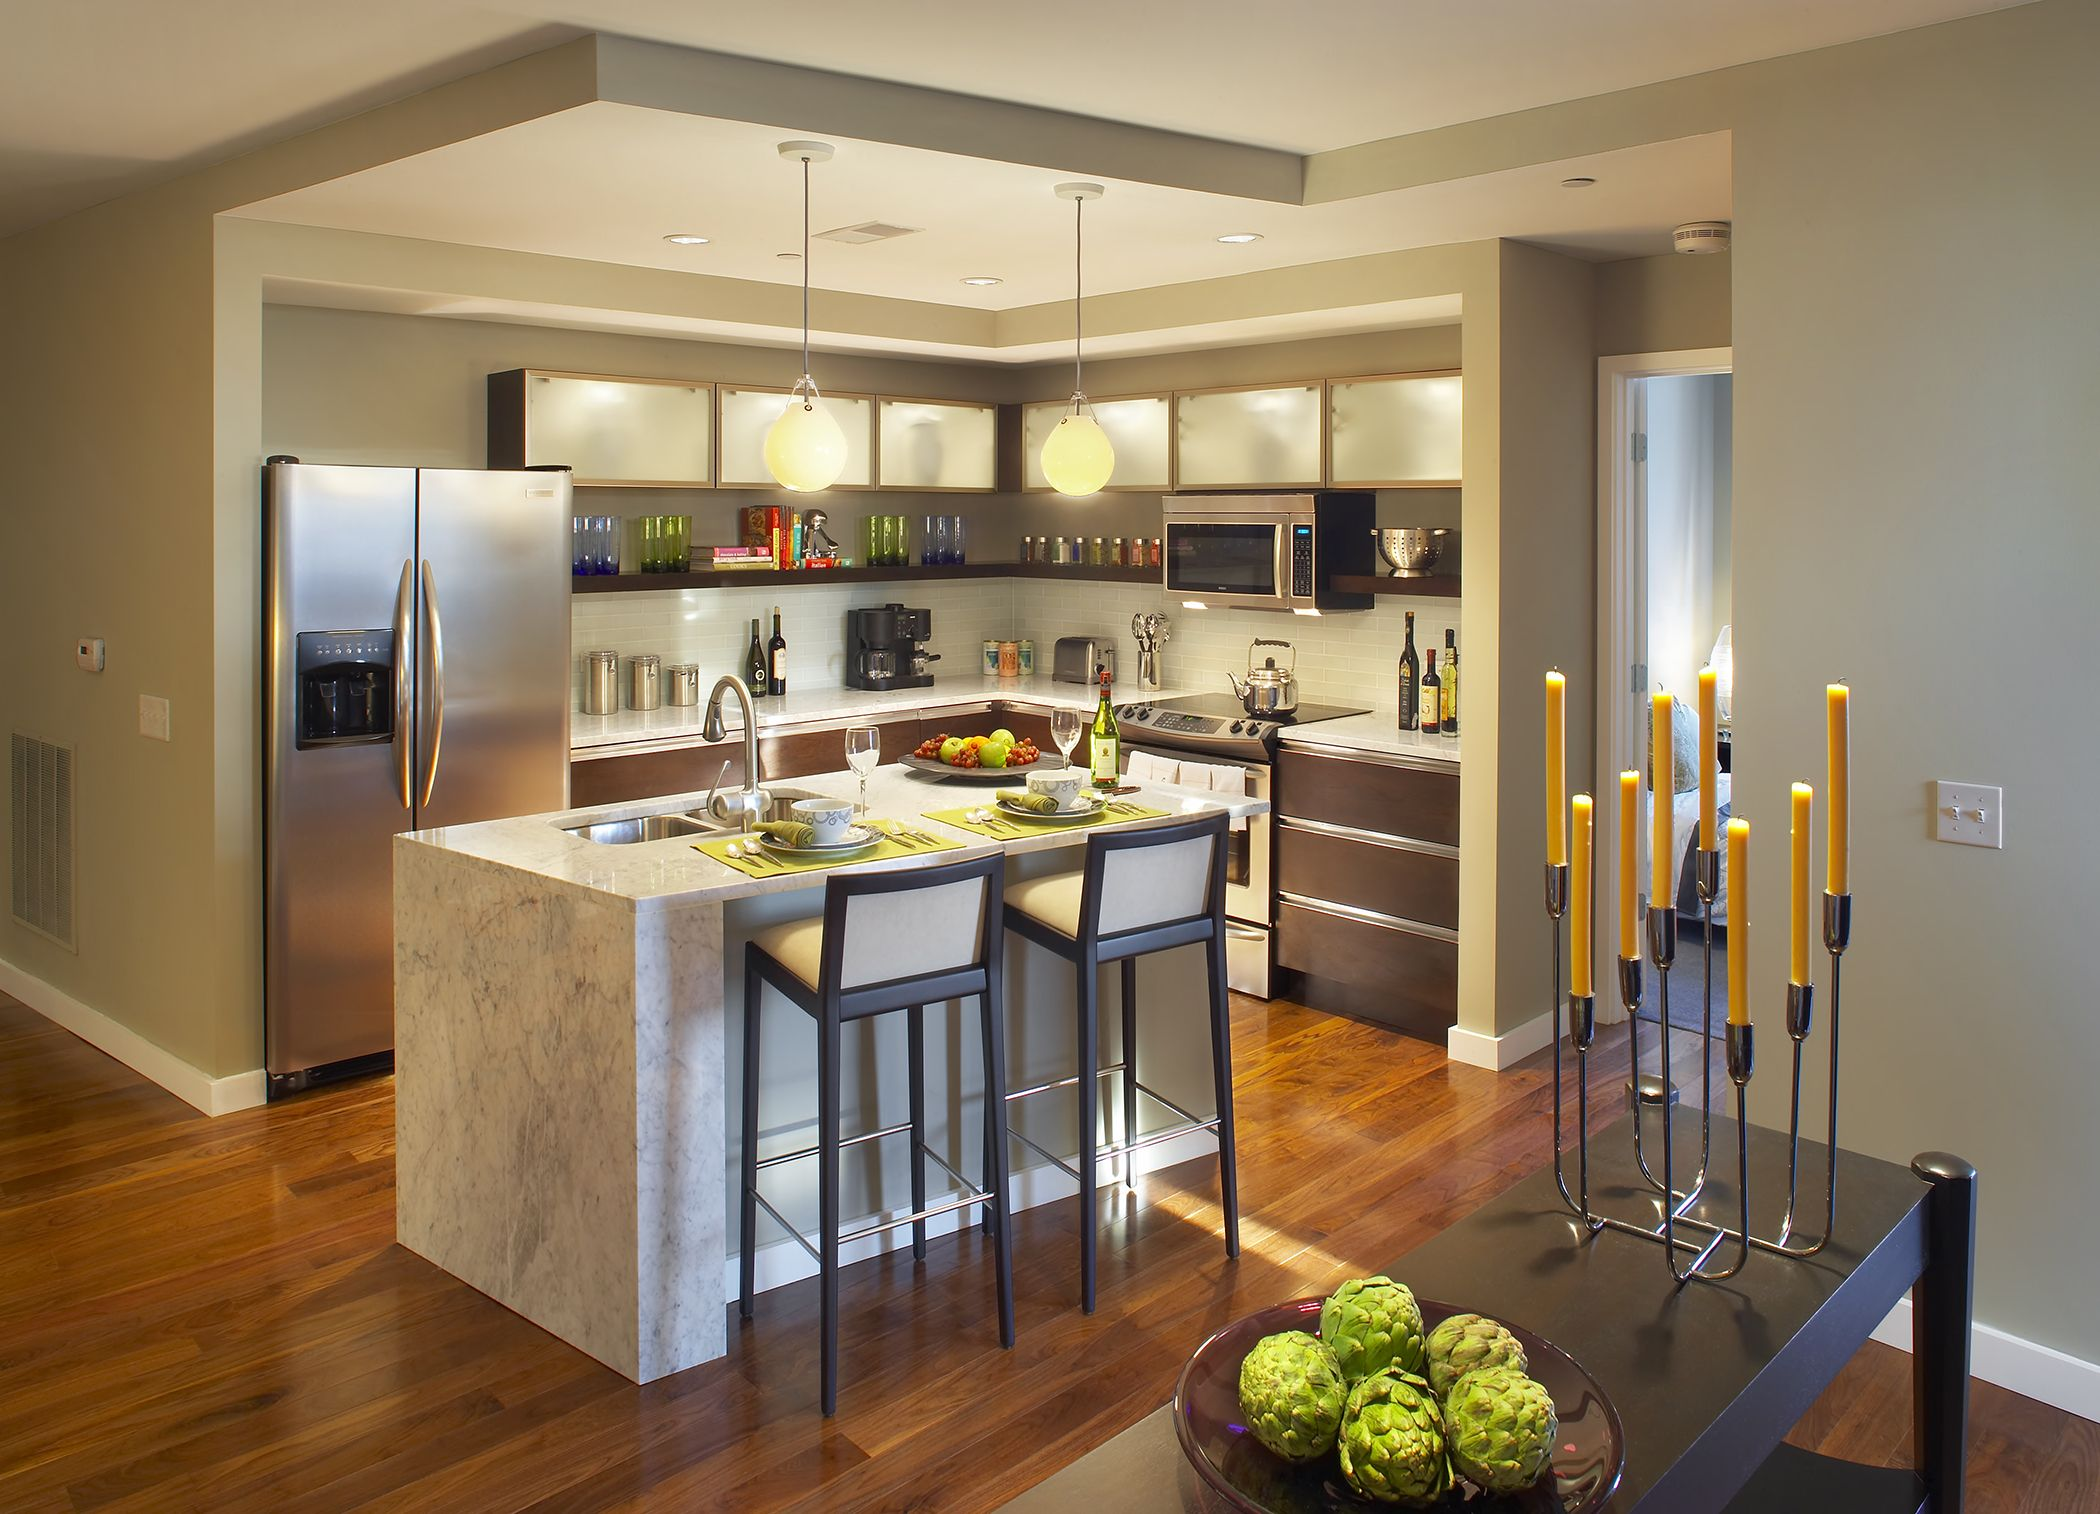 Park Pacific St. Louis, MO | Lawrence Group #interiordesign #STL #kitchen